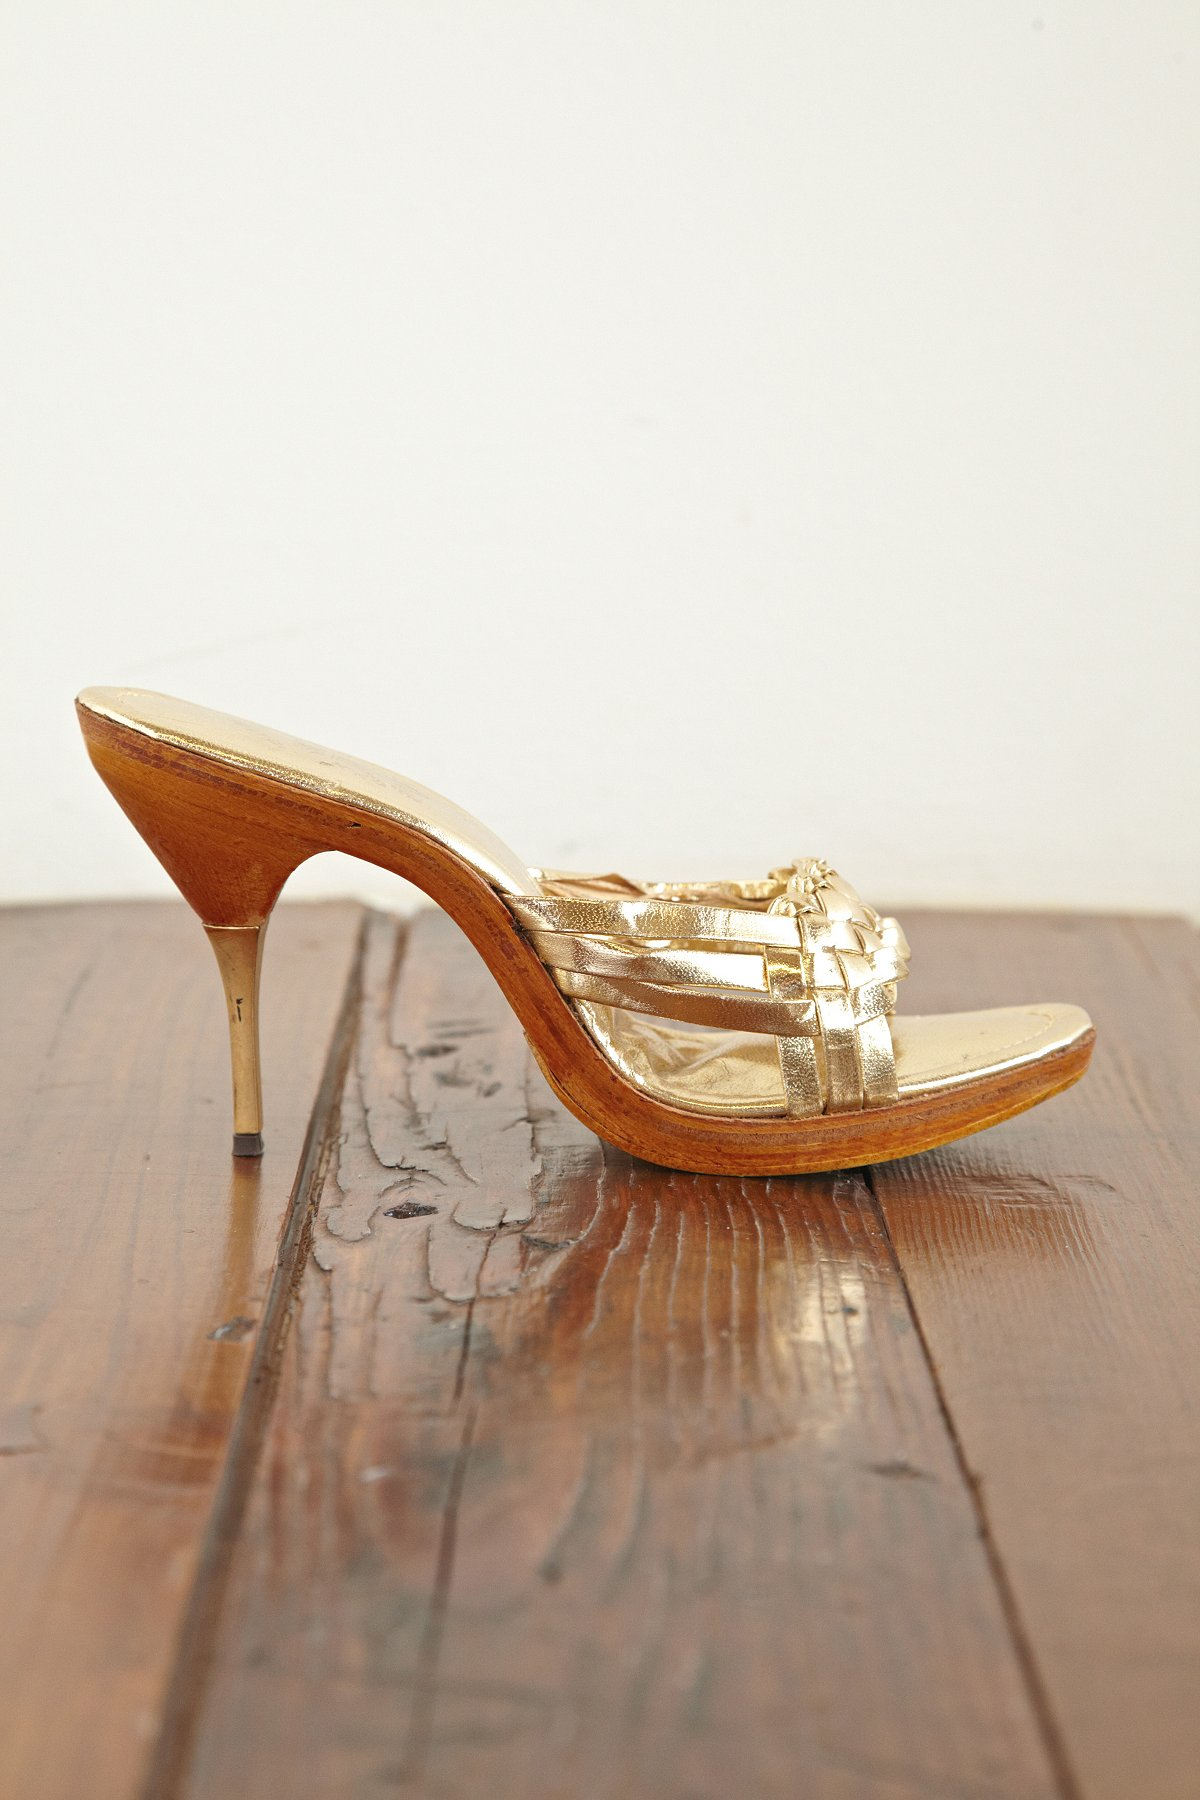 Vintage Gold Pumps